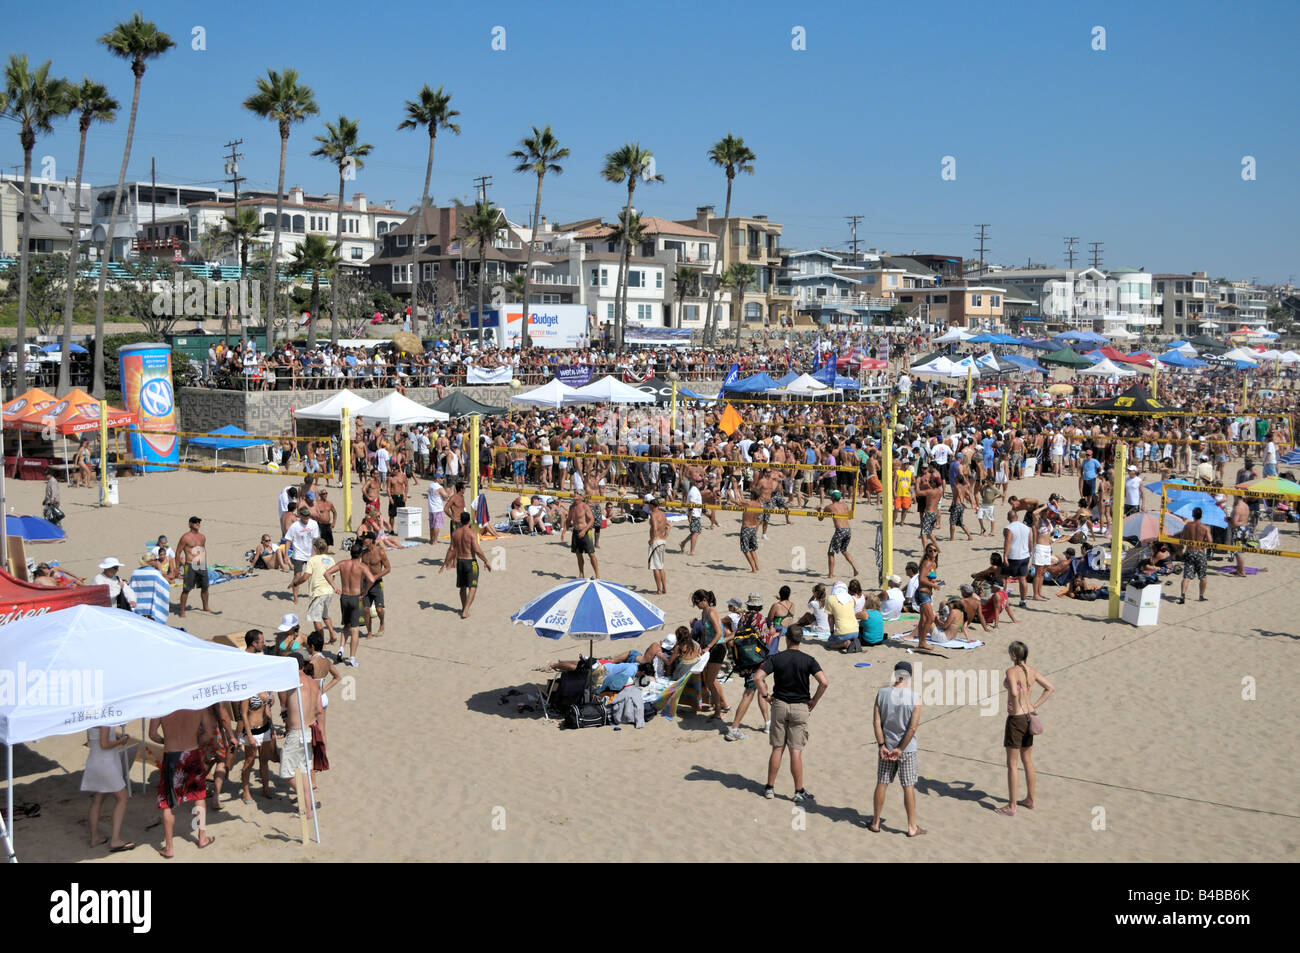 Beach volley ball competitions on Manhattan Beach, California - Stock Image